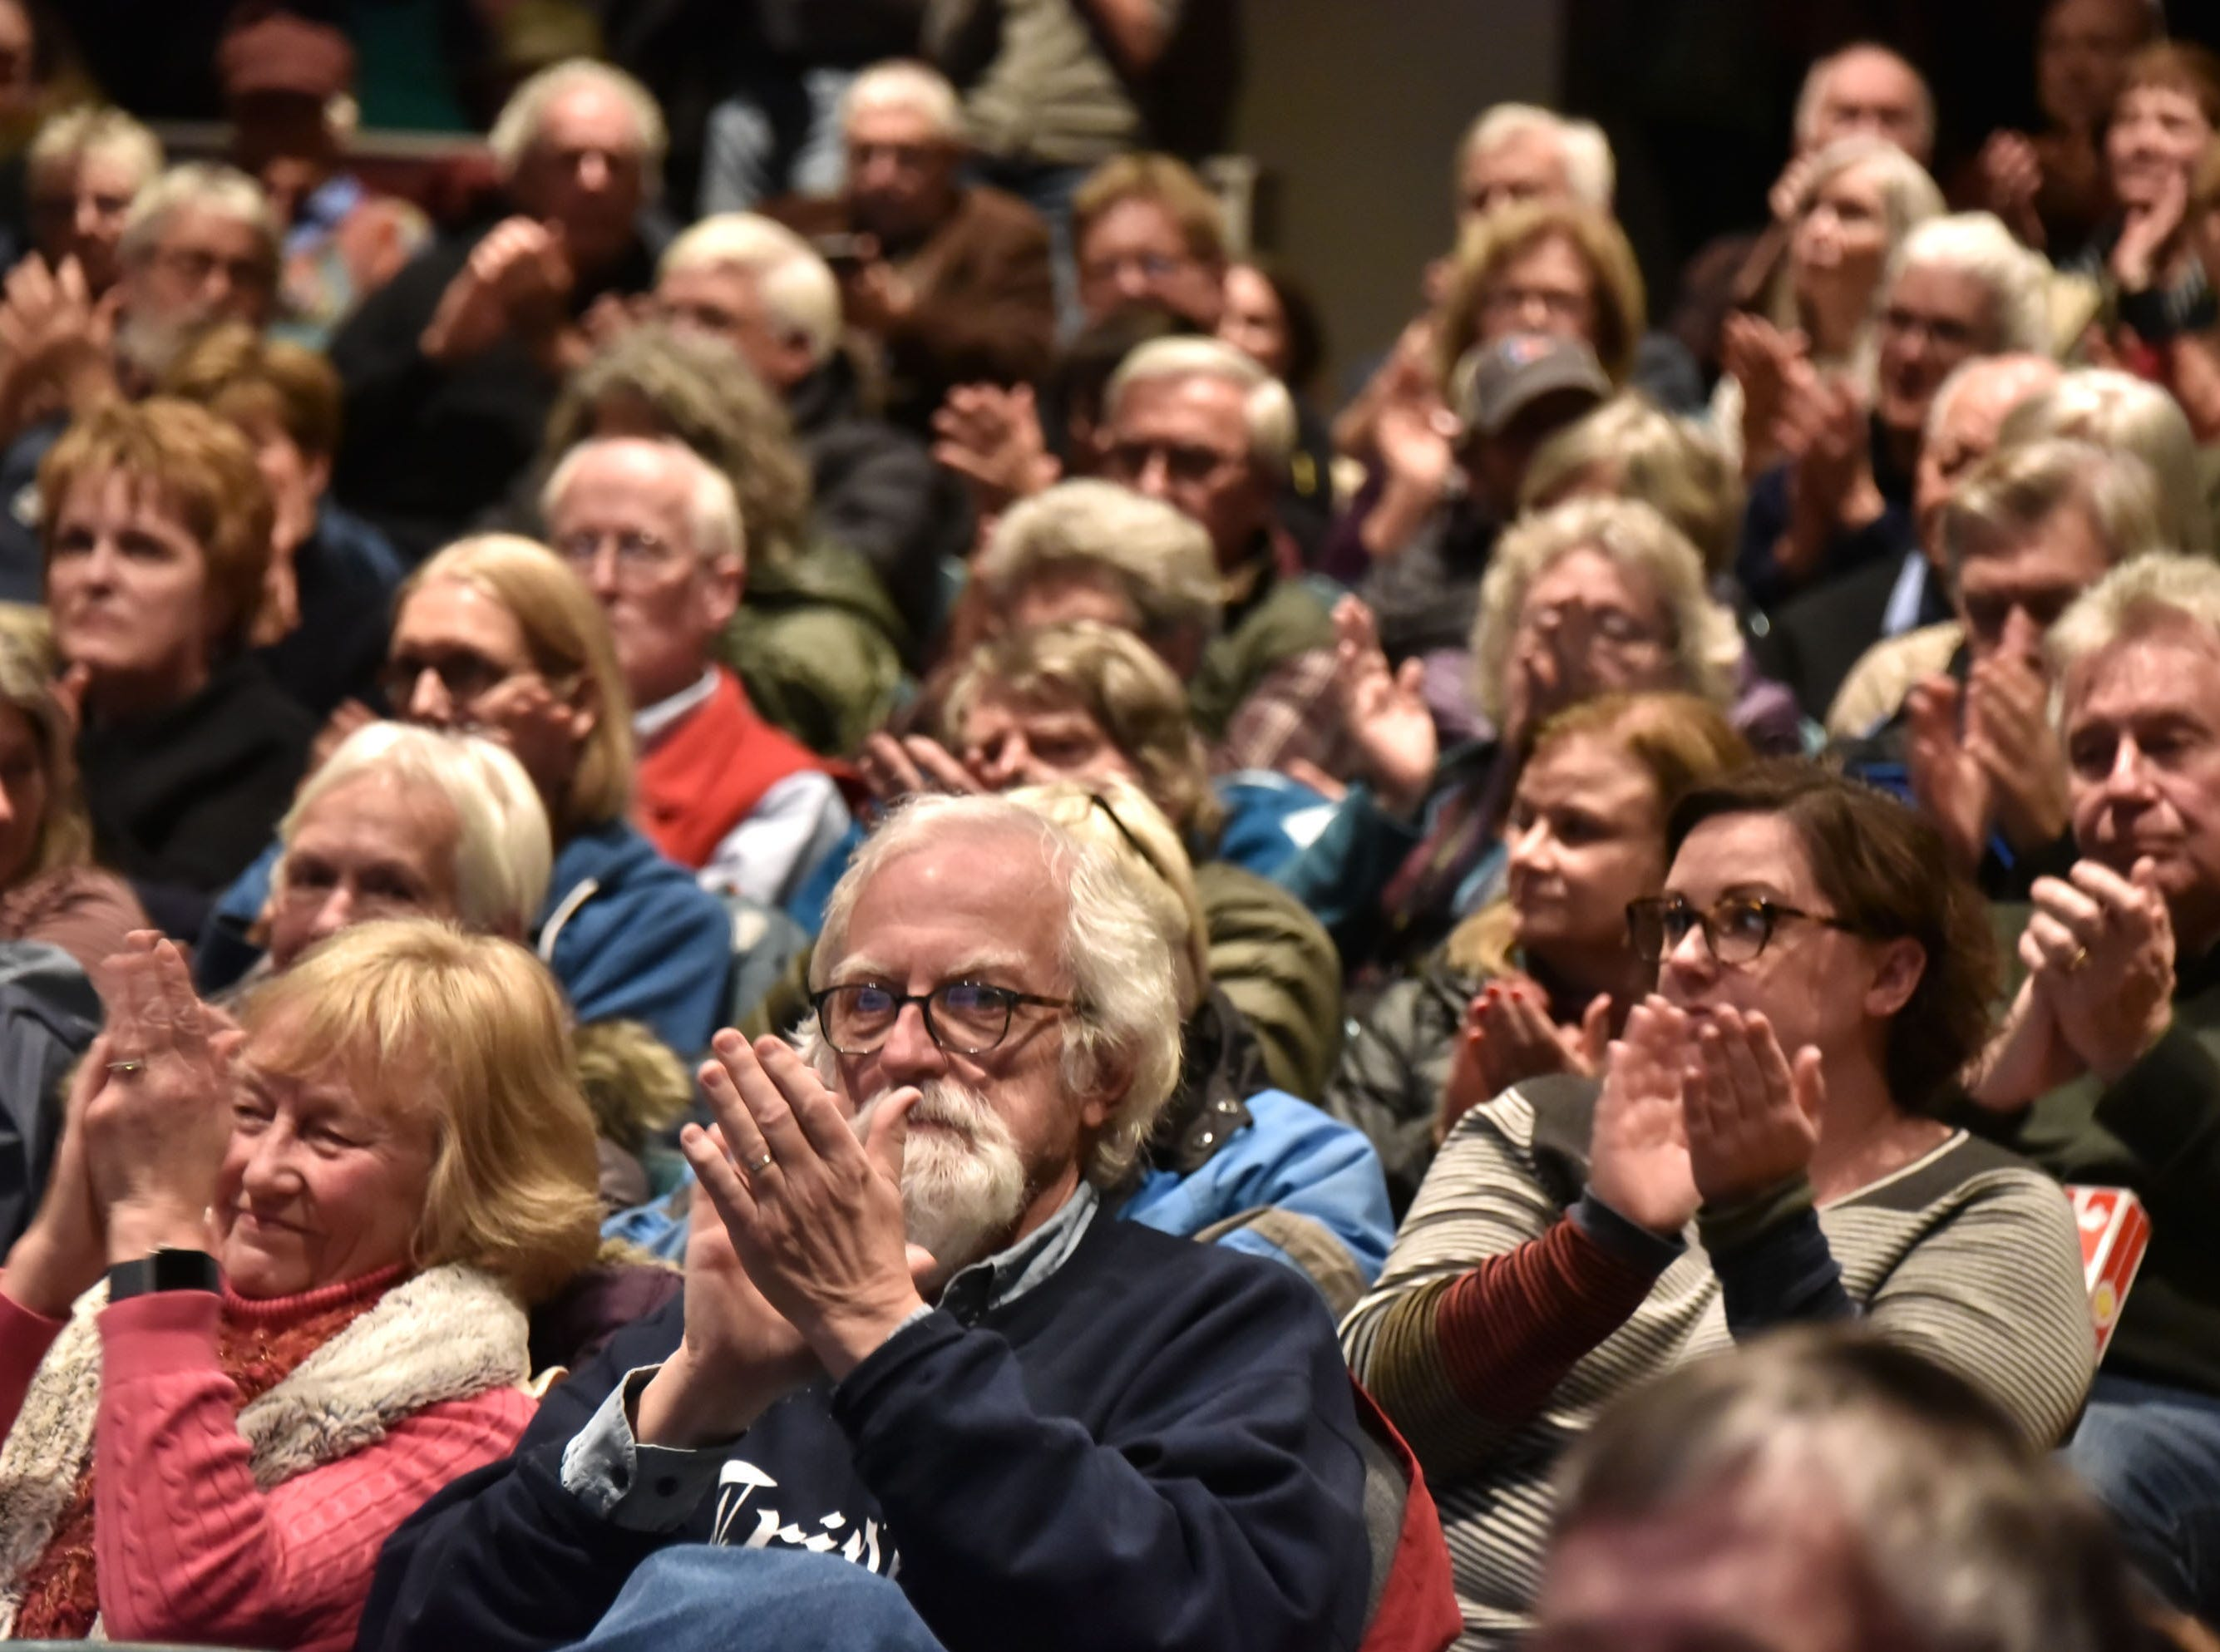 An overflow crowd fills the 200-seat Bay theater in Suttons Bay at a community forum Tuesday, Dec. 11, 2018 where discussion was presented in hopes of finding a new owner for the venue, which is closing at the end of the month. The Bay is the only movie house in Leelanau County.